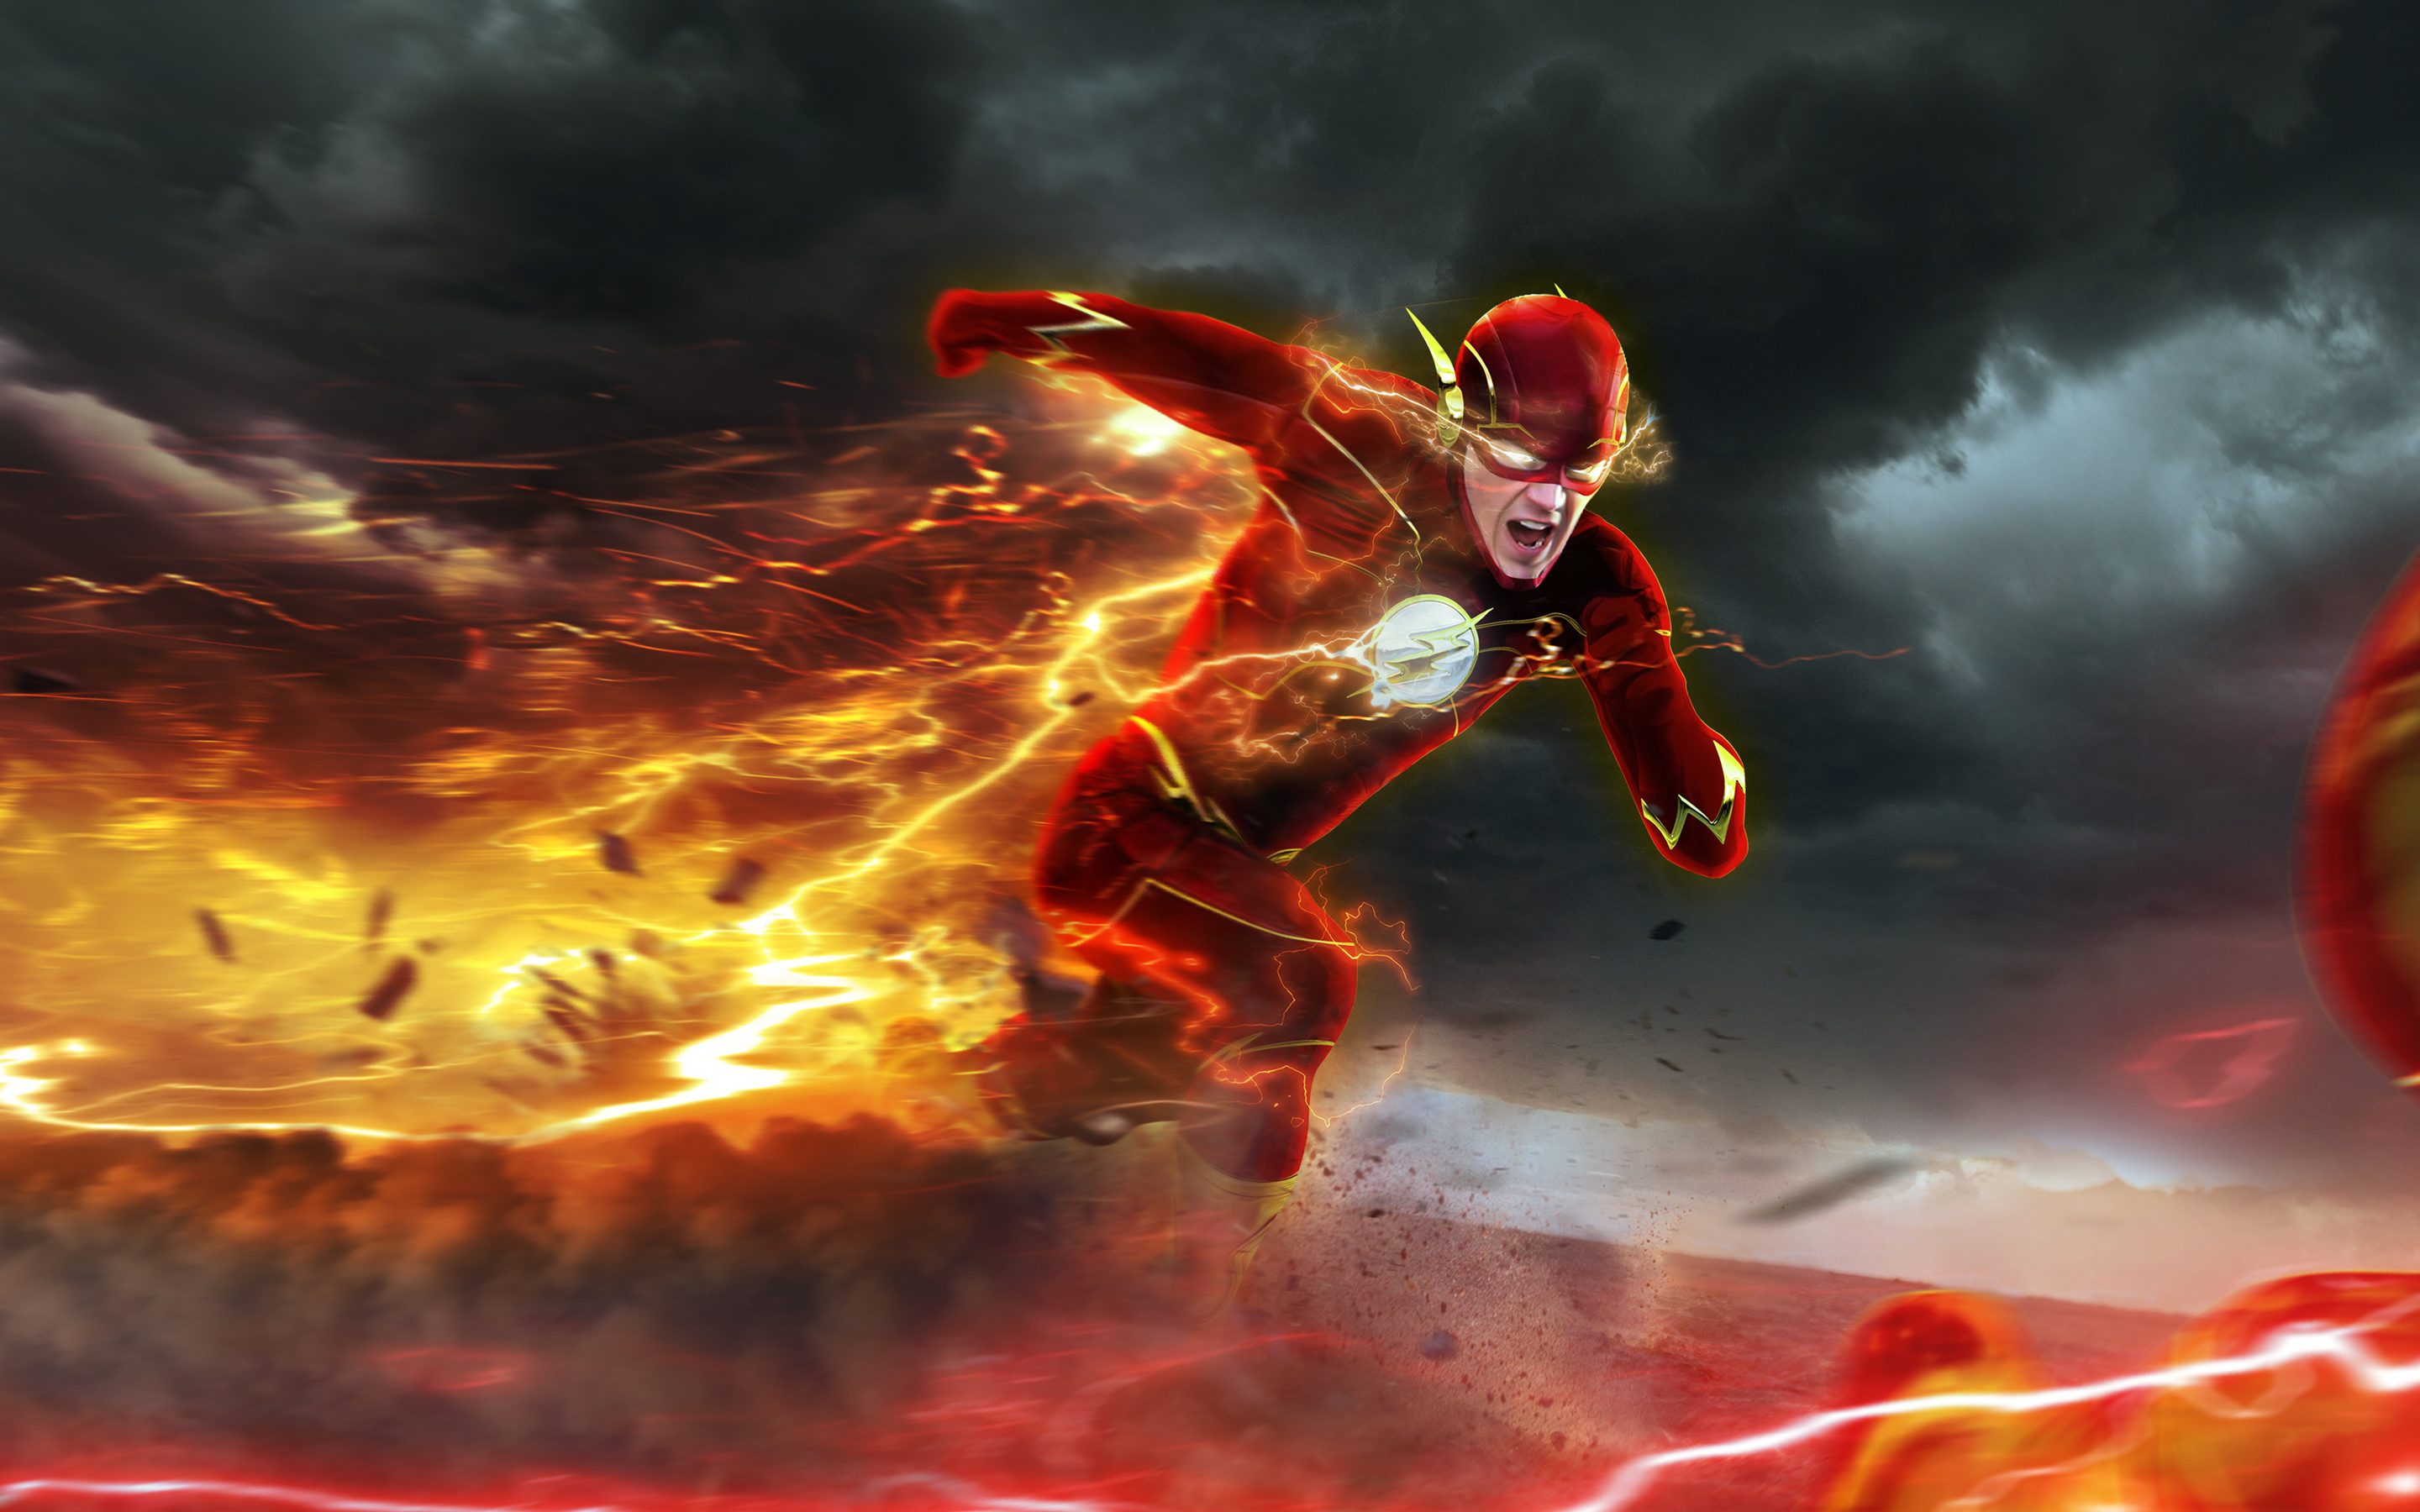 49 The Flash Hd Wallpaper On Wallpapersafari